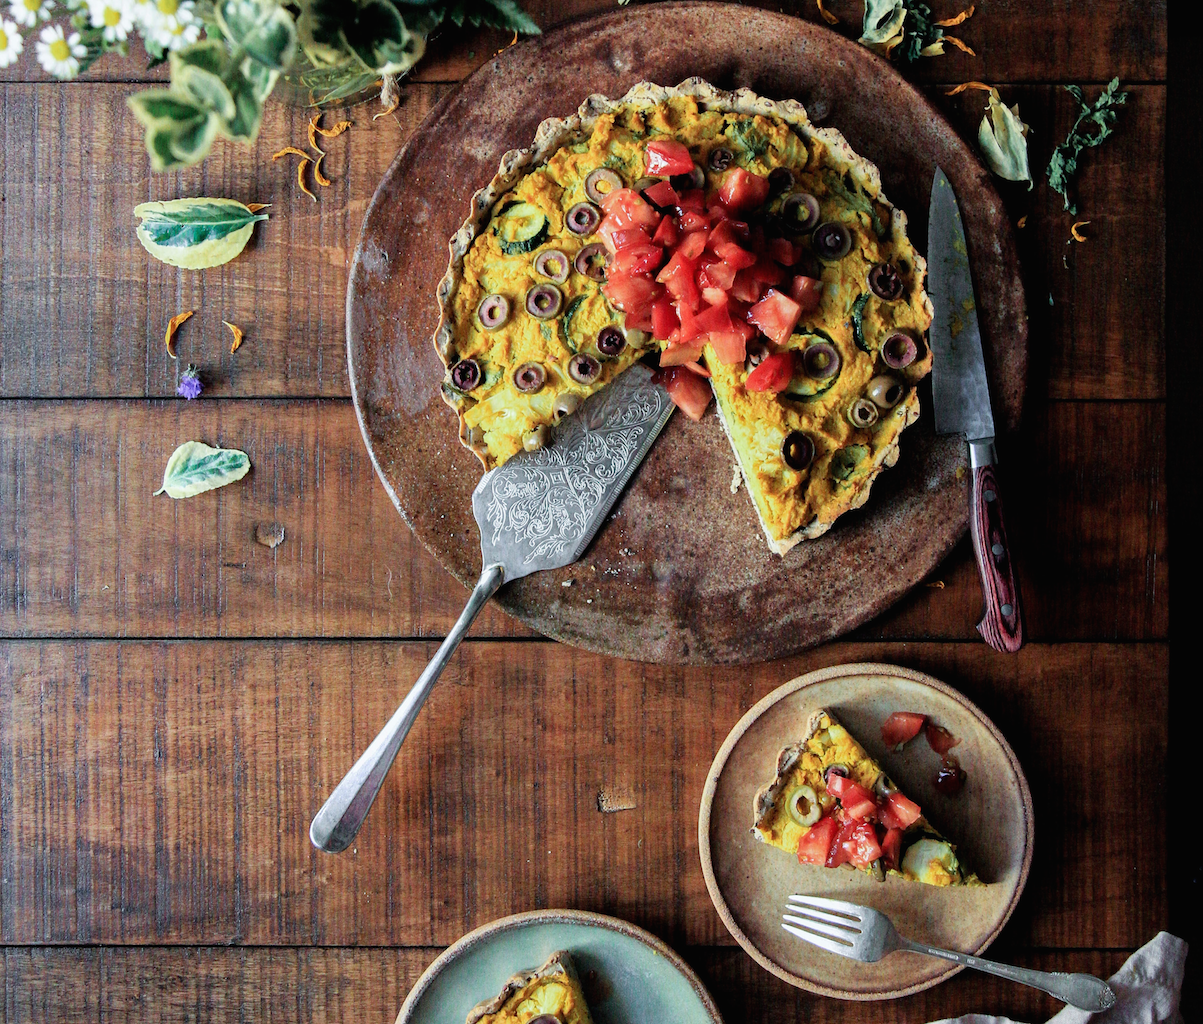 Staying on track during February + Gluten-free Almond, Leek and Ricotta Tart Recipe